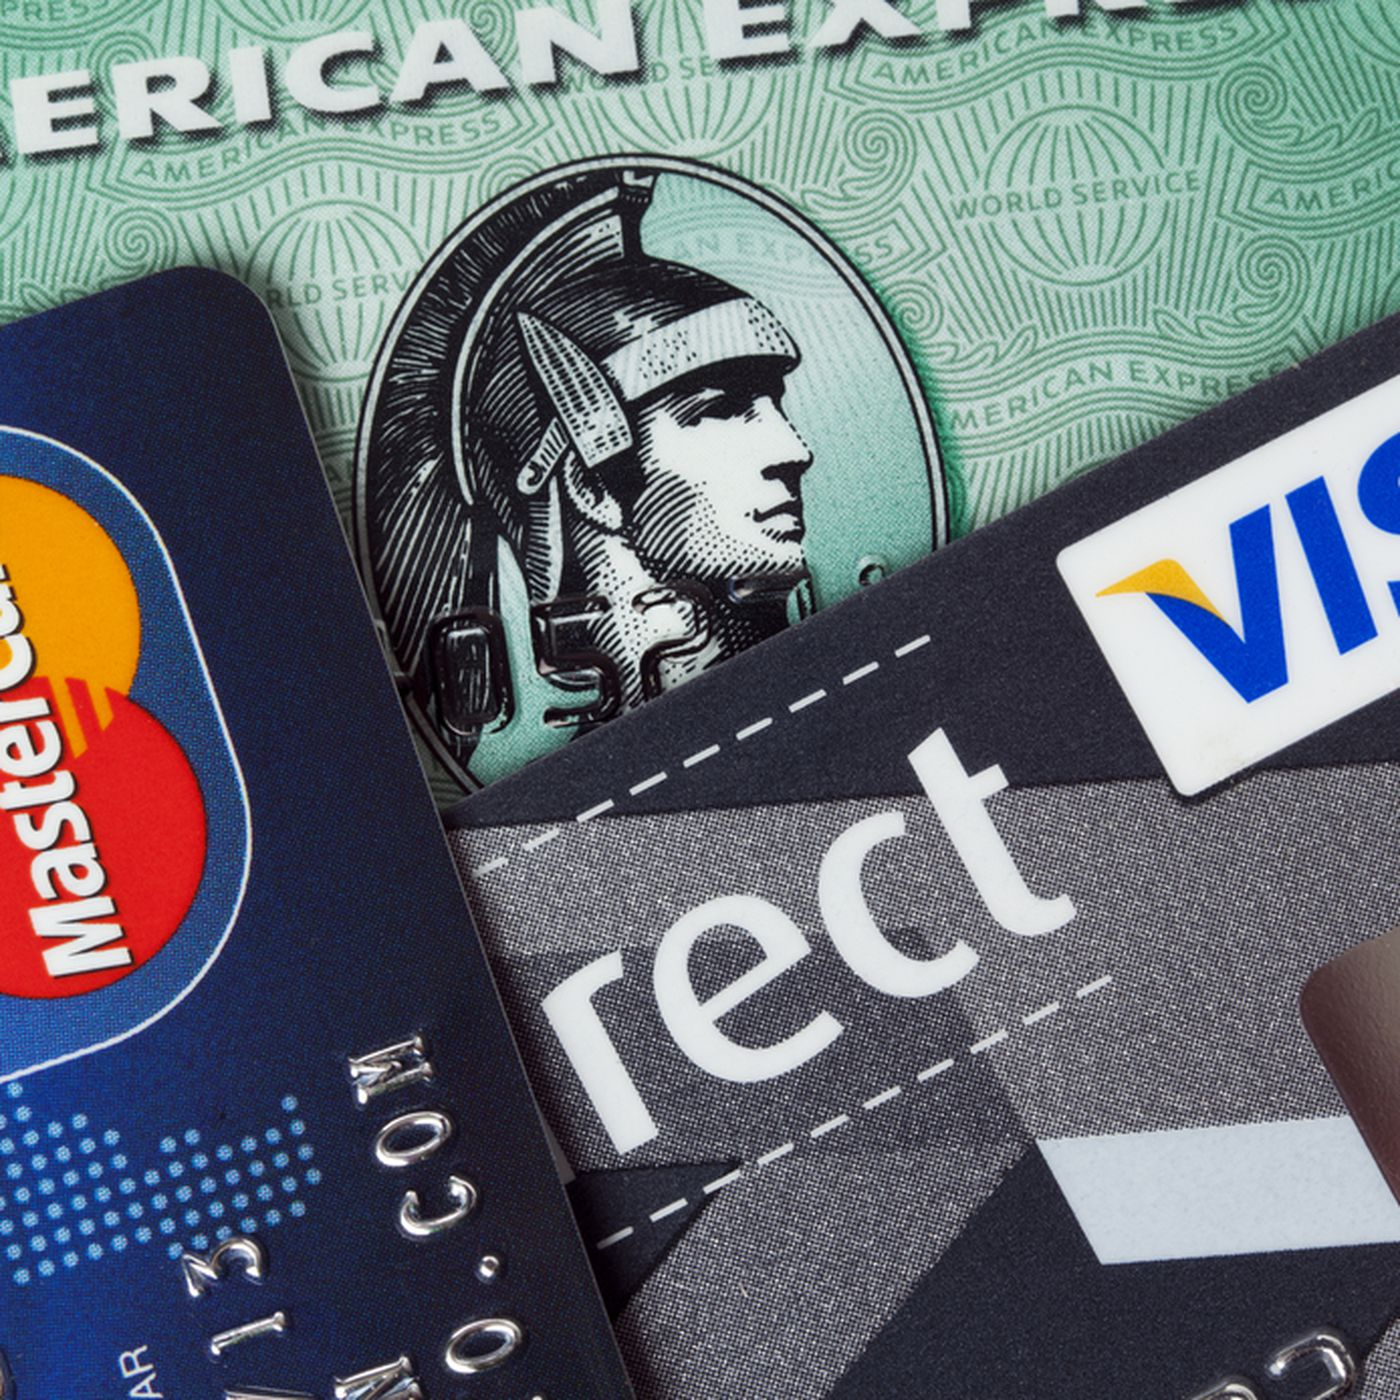 Credit card signatures are ending in the US on April 13th The Verge